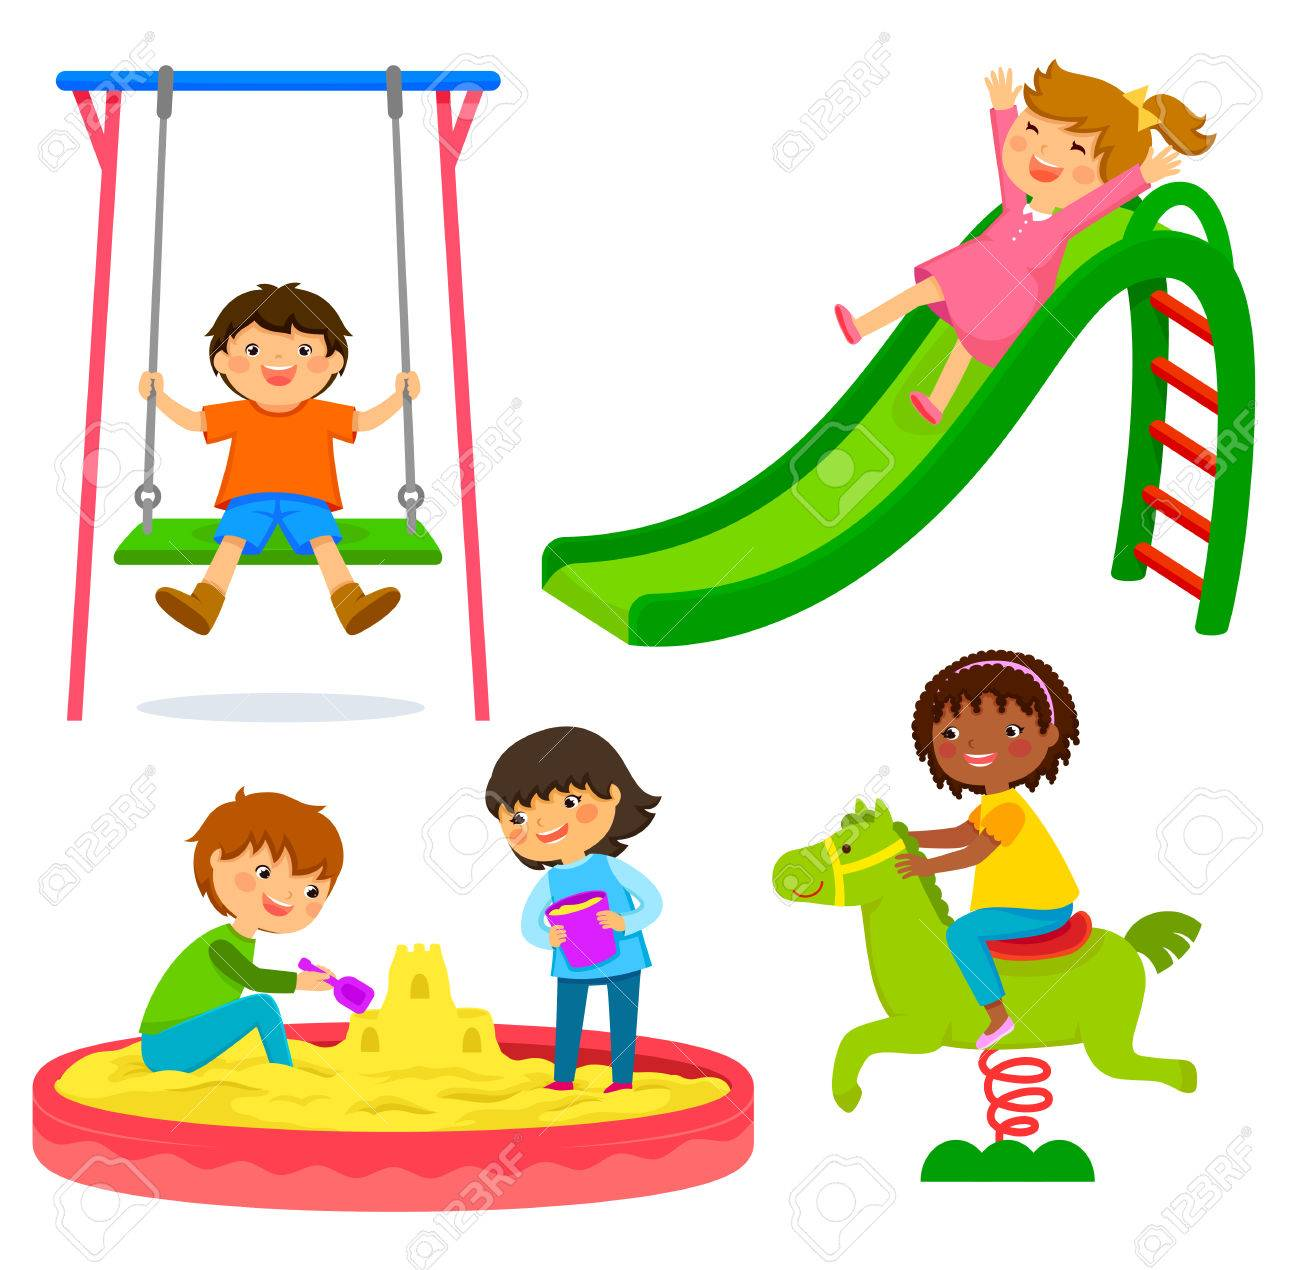 set of kids playing in a playground - 69363451